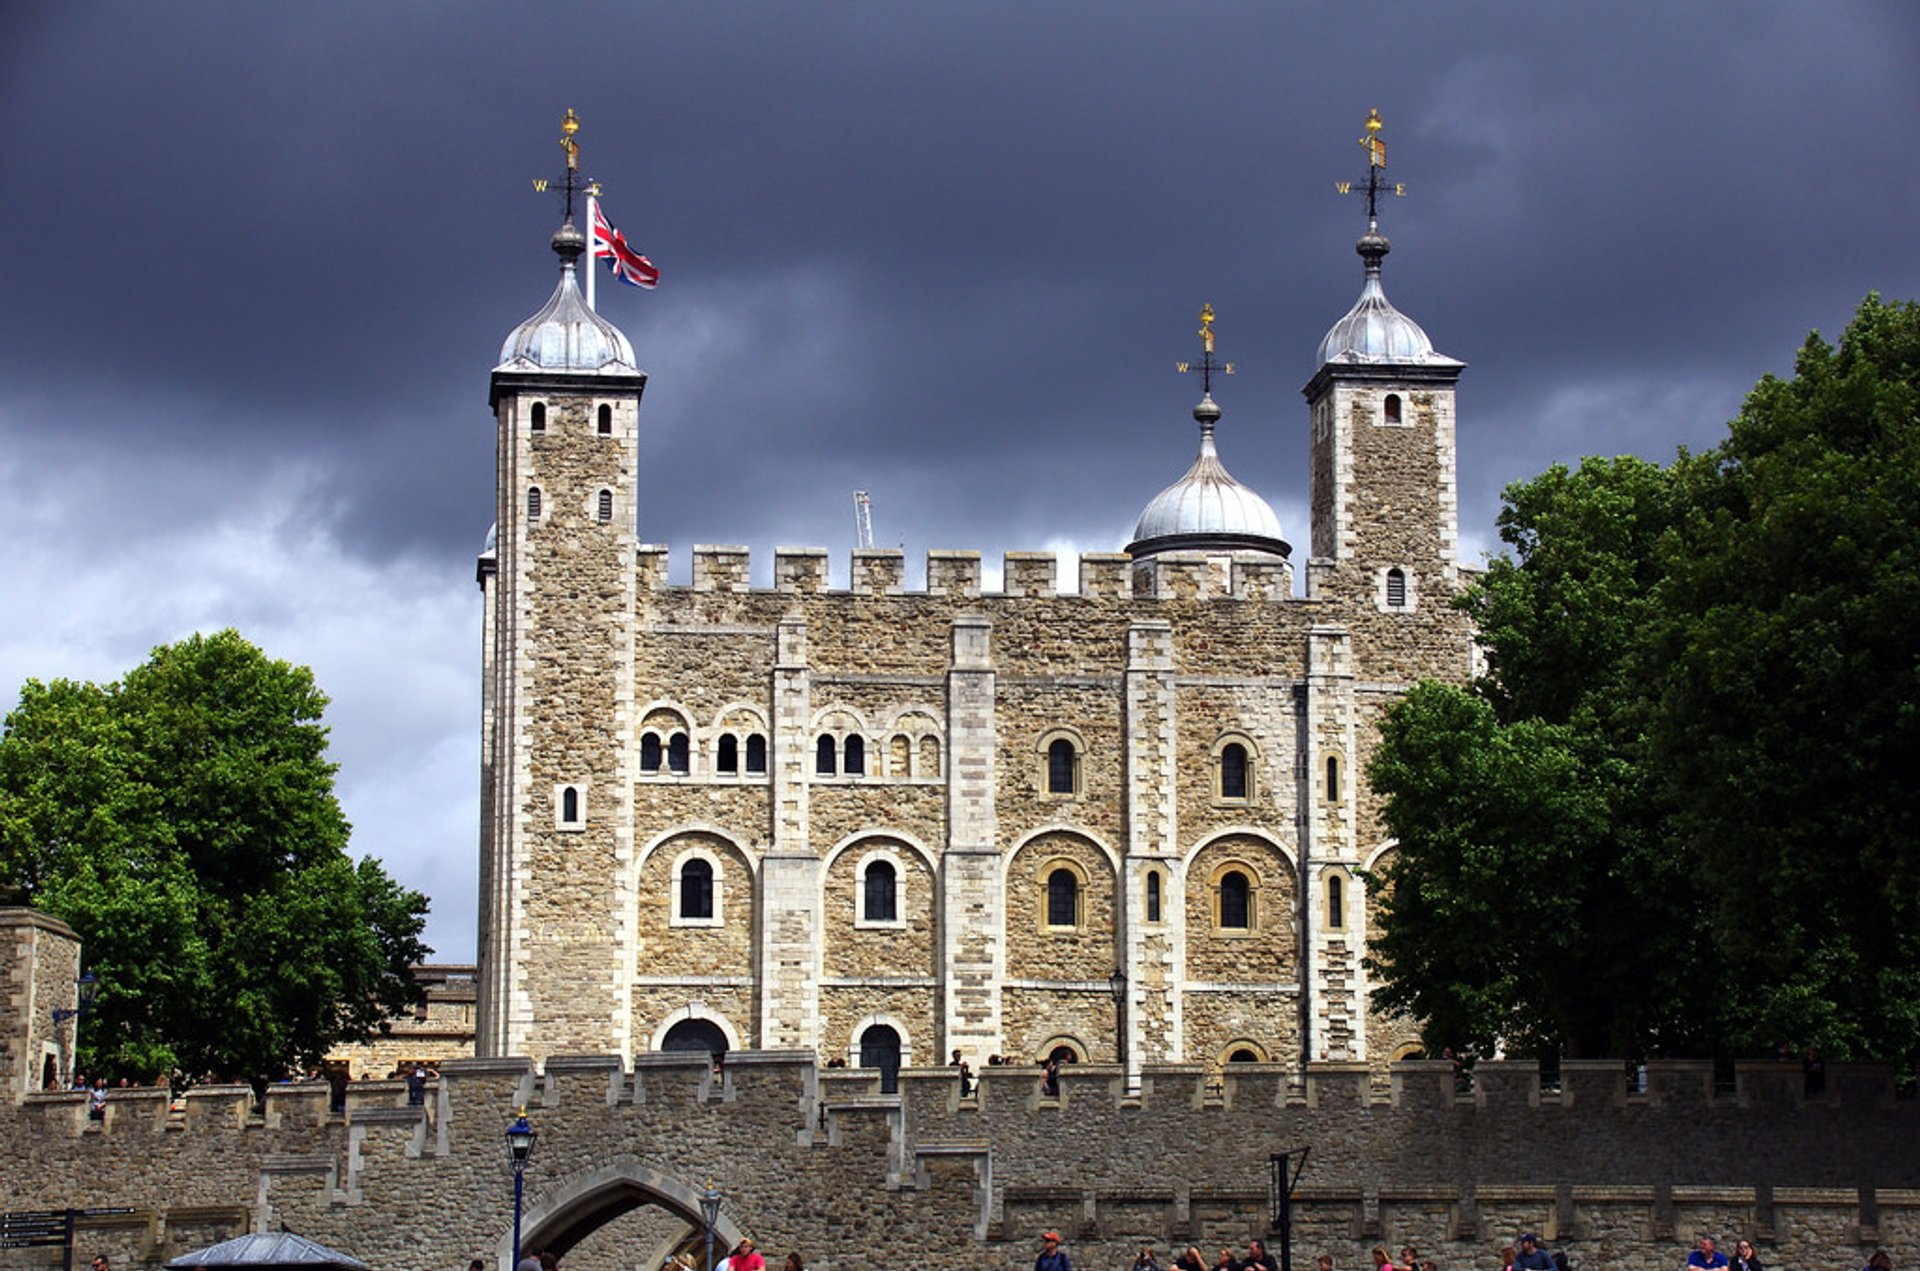 Tower of London in London 2020 - Best Time